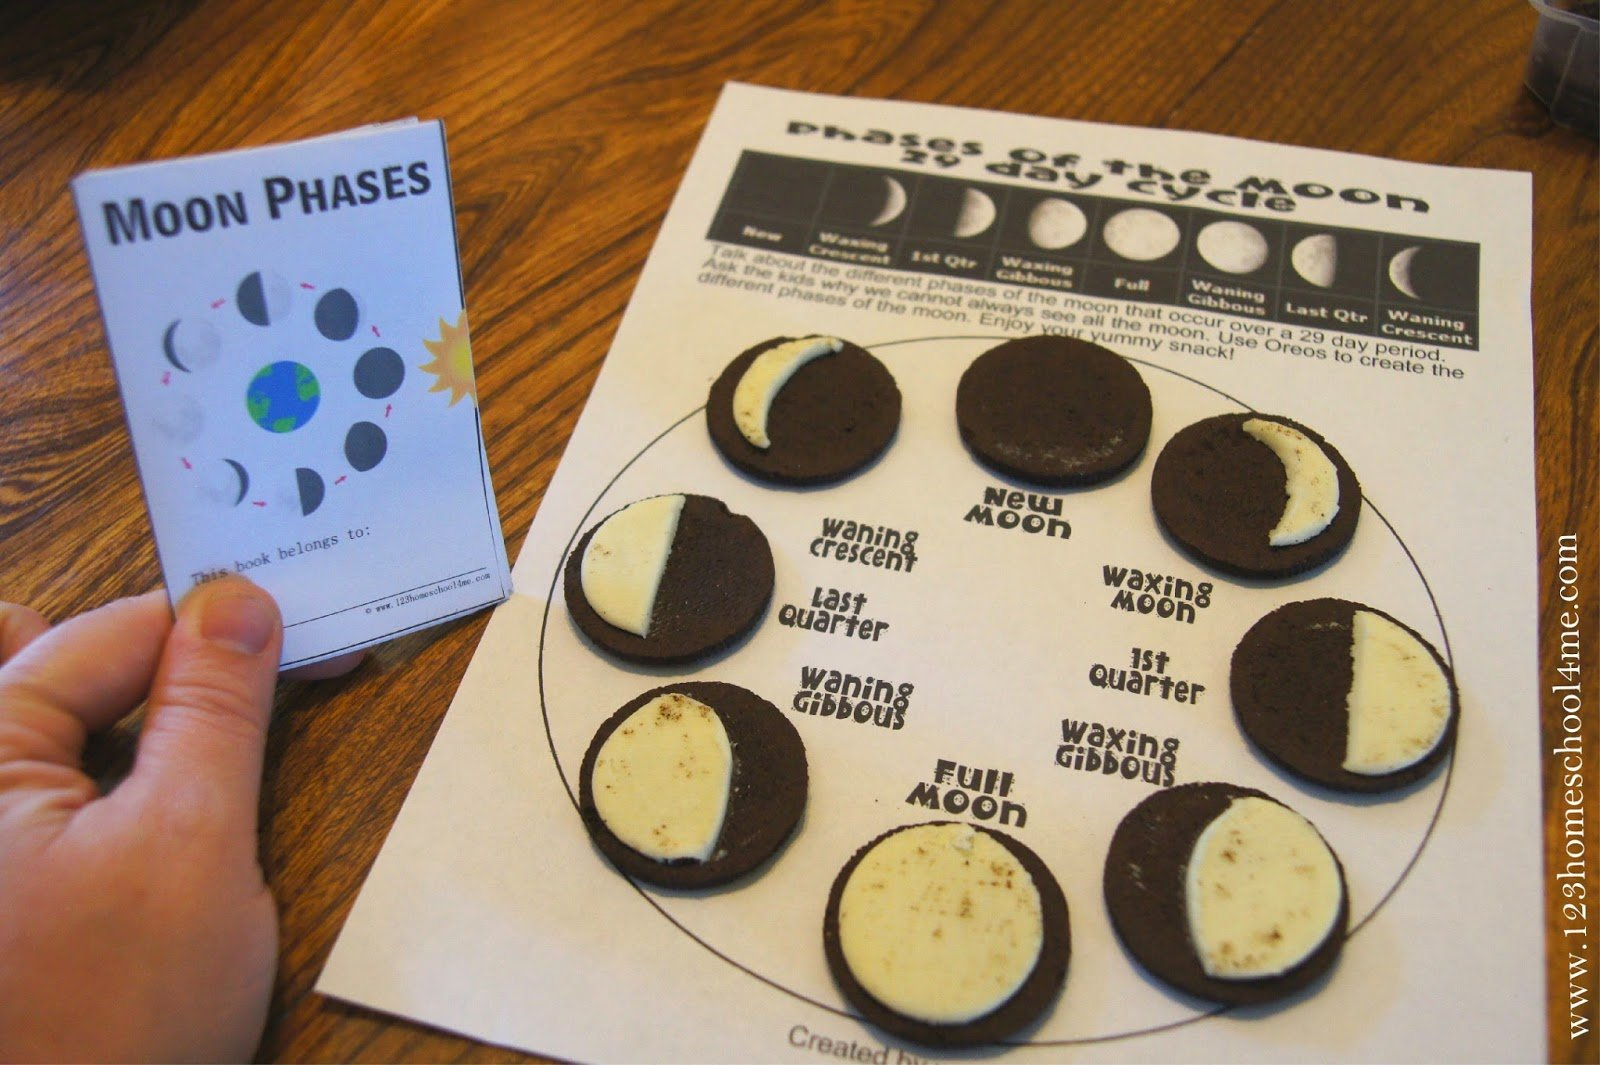 Phases Of The Moon Printable Worksheets 87 Images In Collection Throughout Phases Of The Moon Printable Worksheets